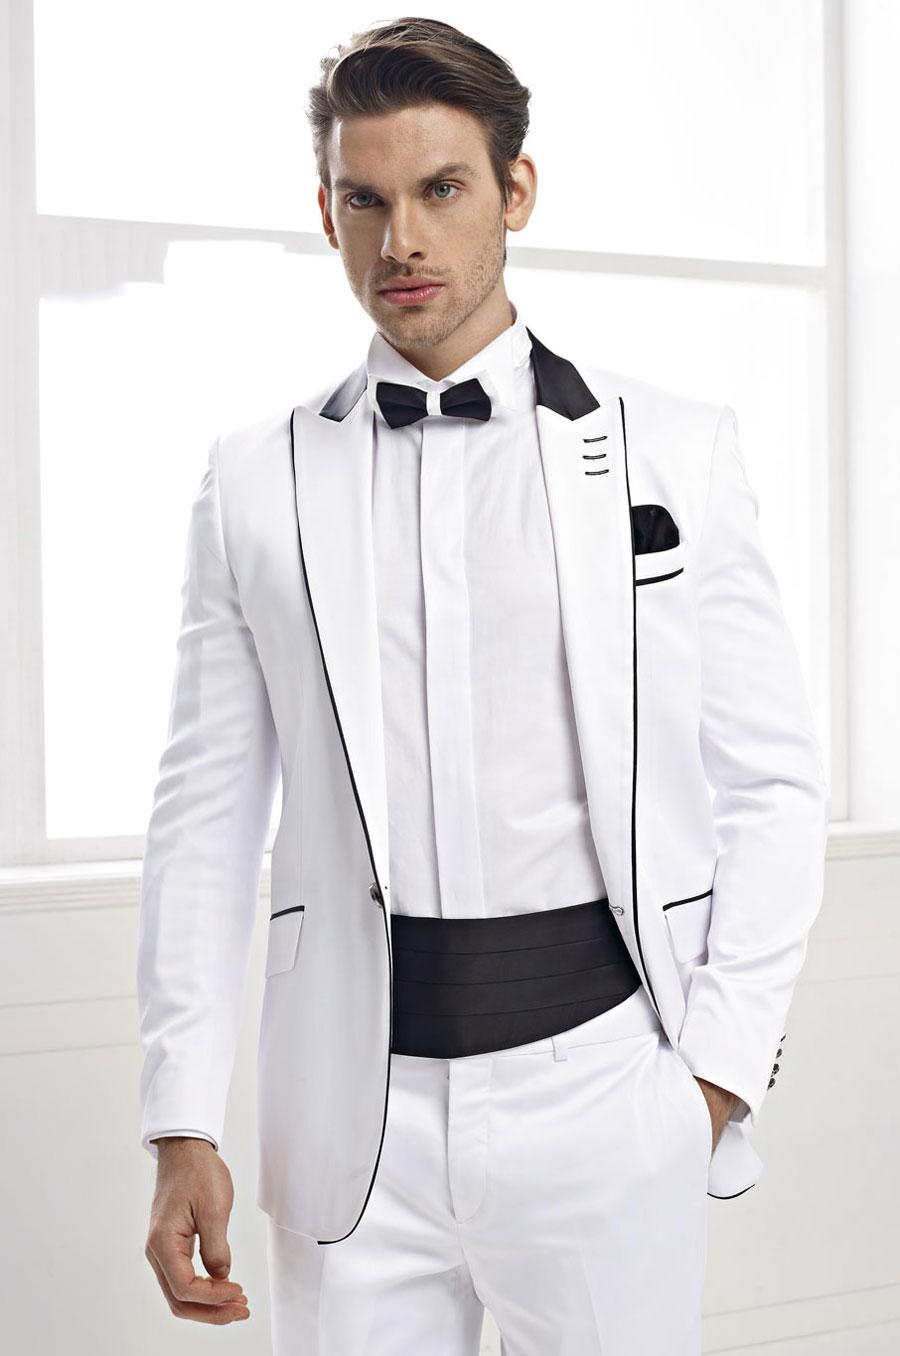 New Style Groomsmen Suits 2015 White Wedding Suits For Men Peaked ...